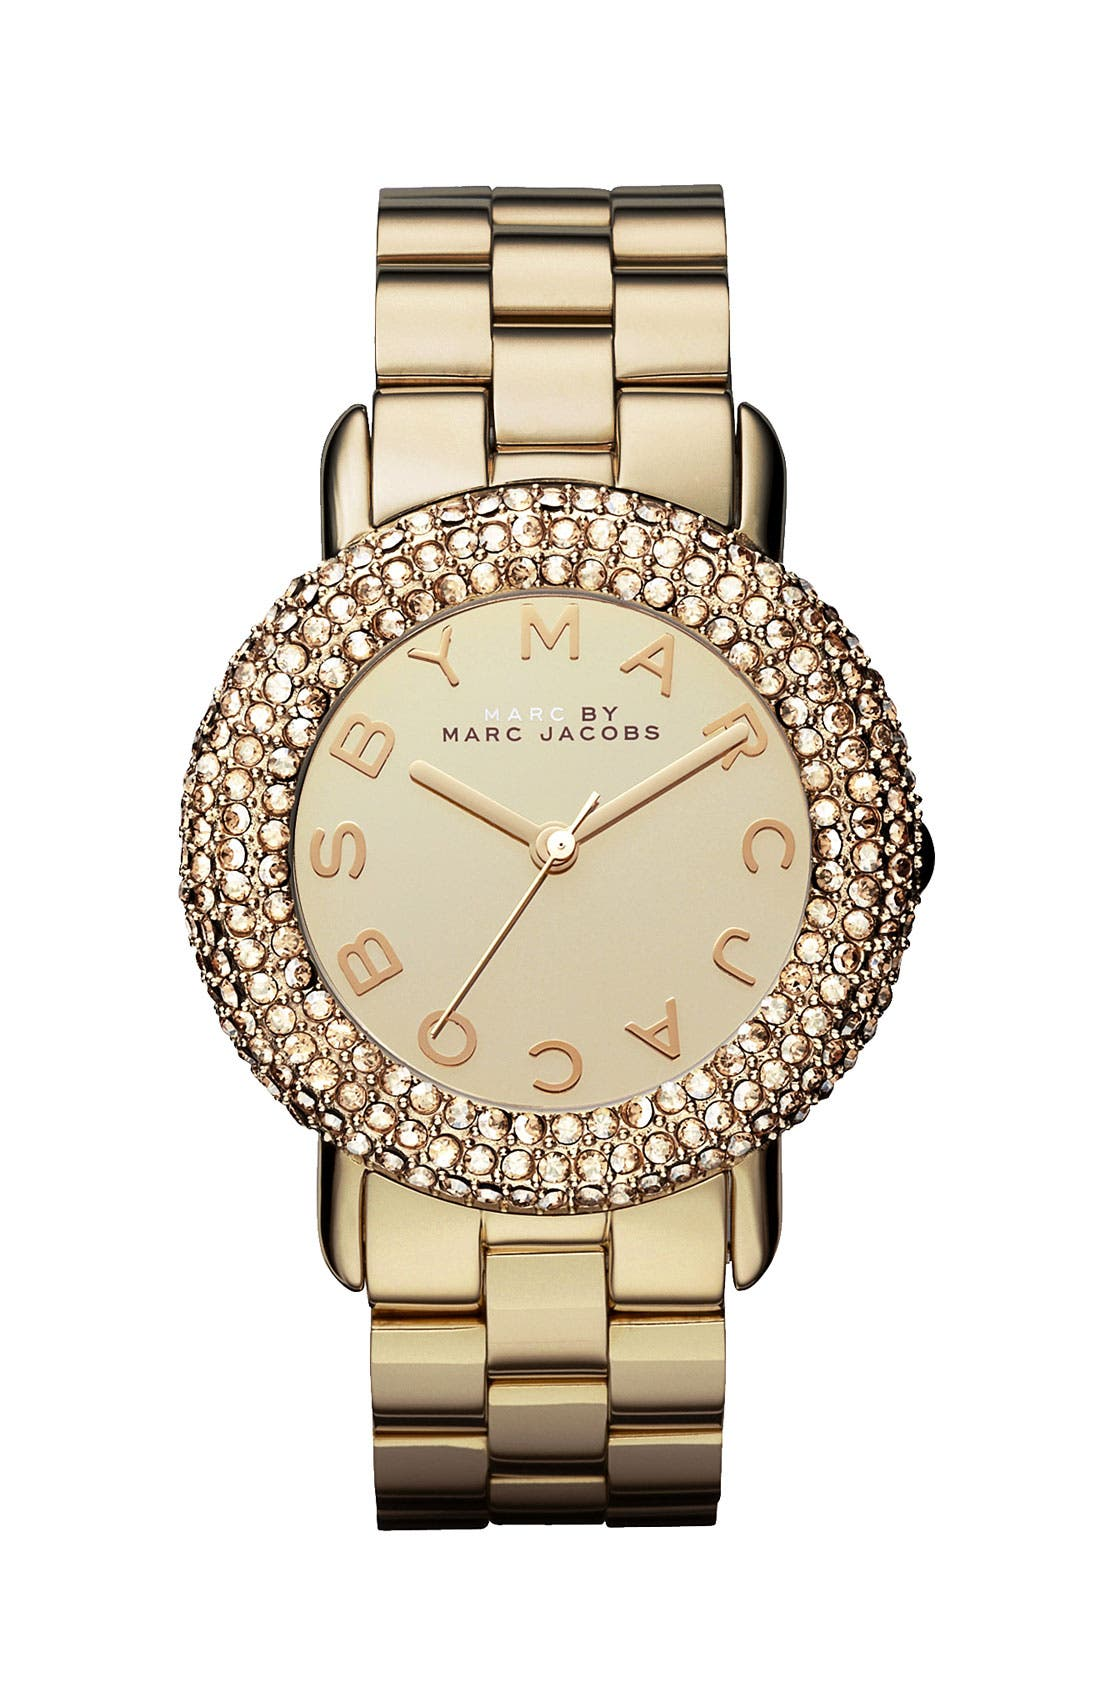 Main Image - MARC JACOBS 'Marci' Mirror Dial Crystal Bezel Watch, 36mm